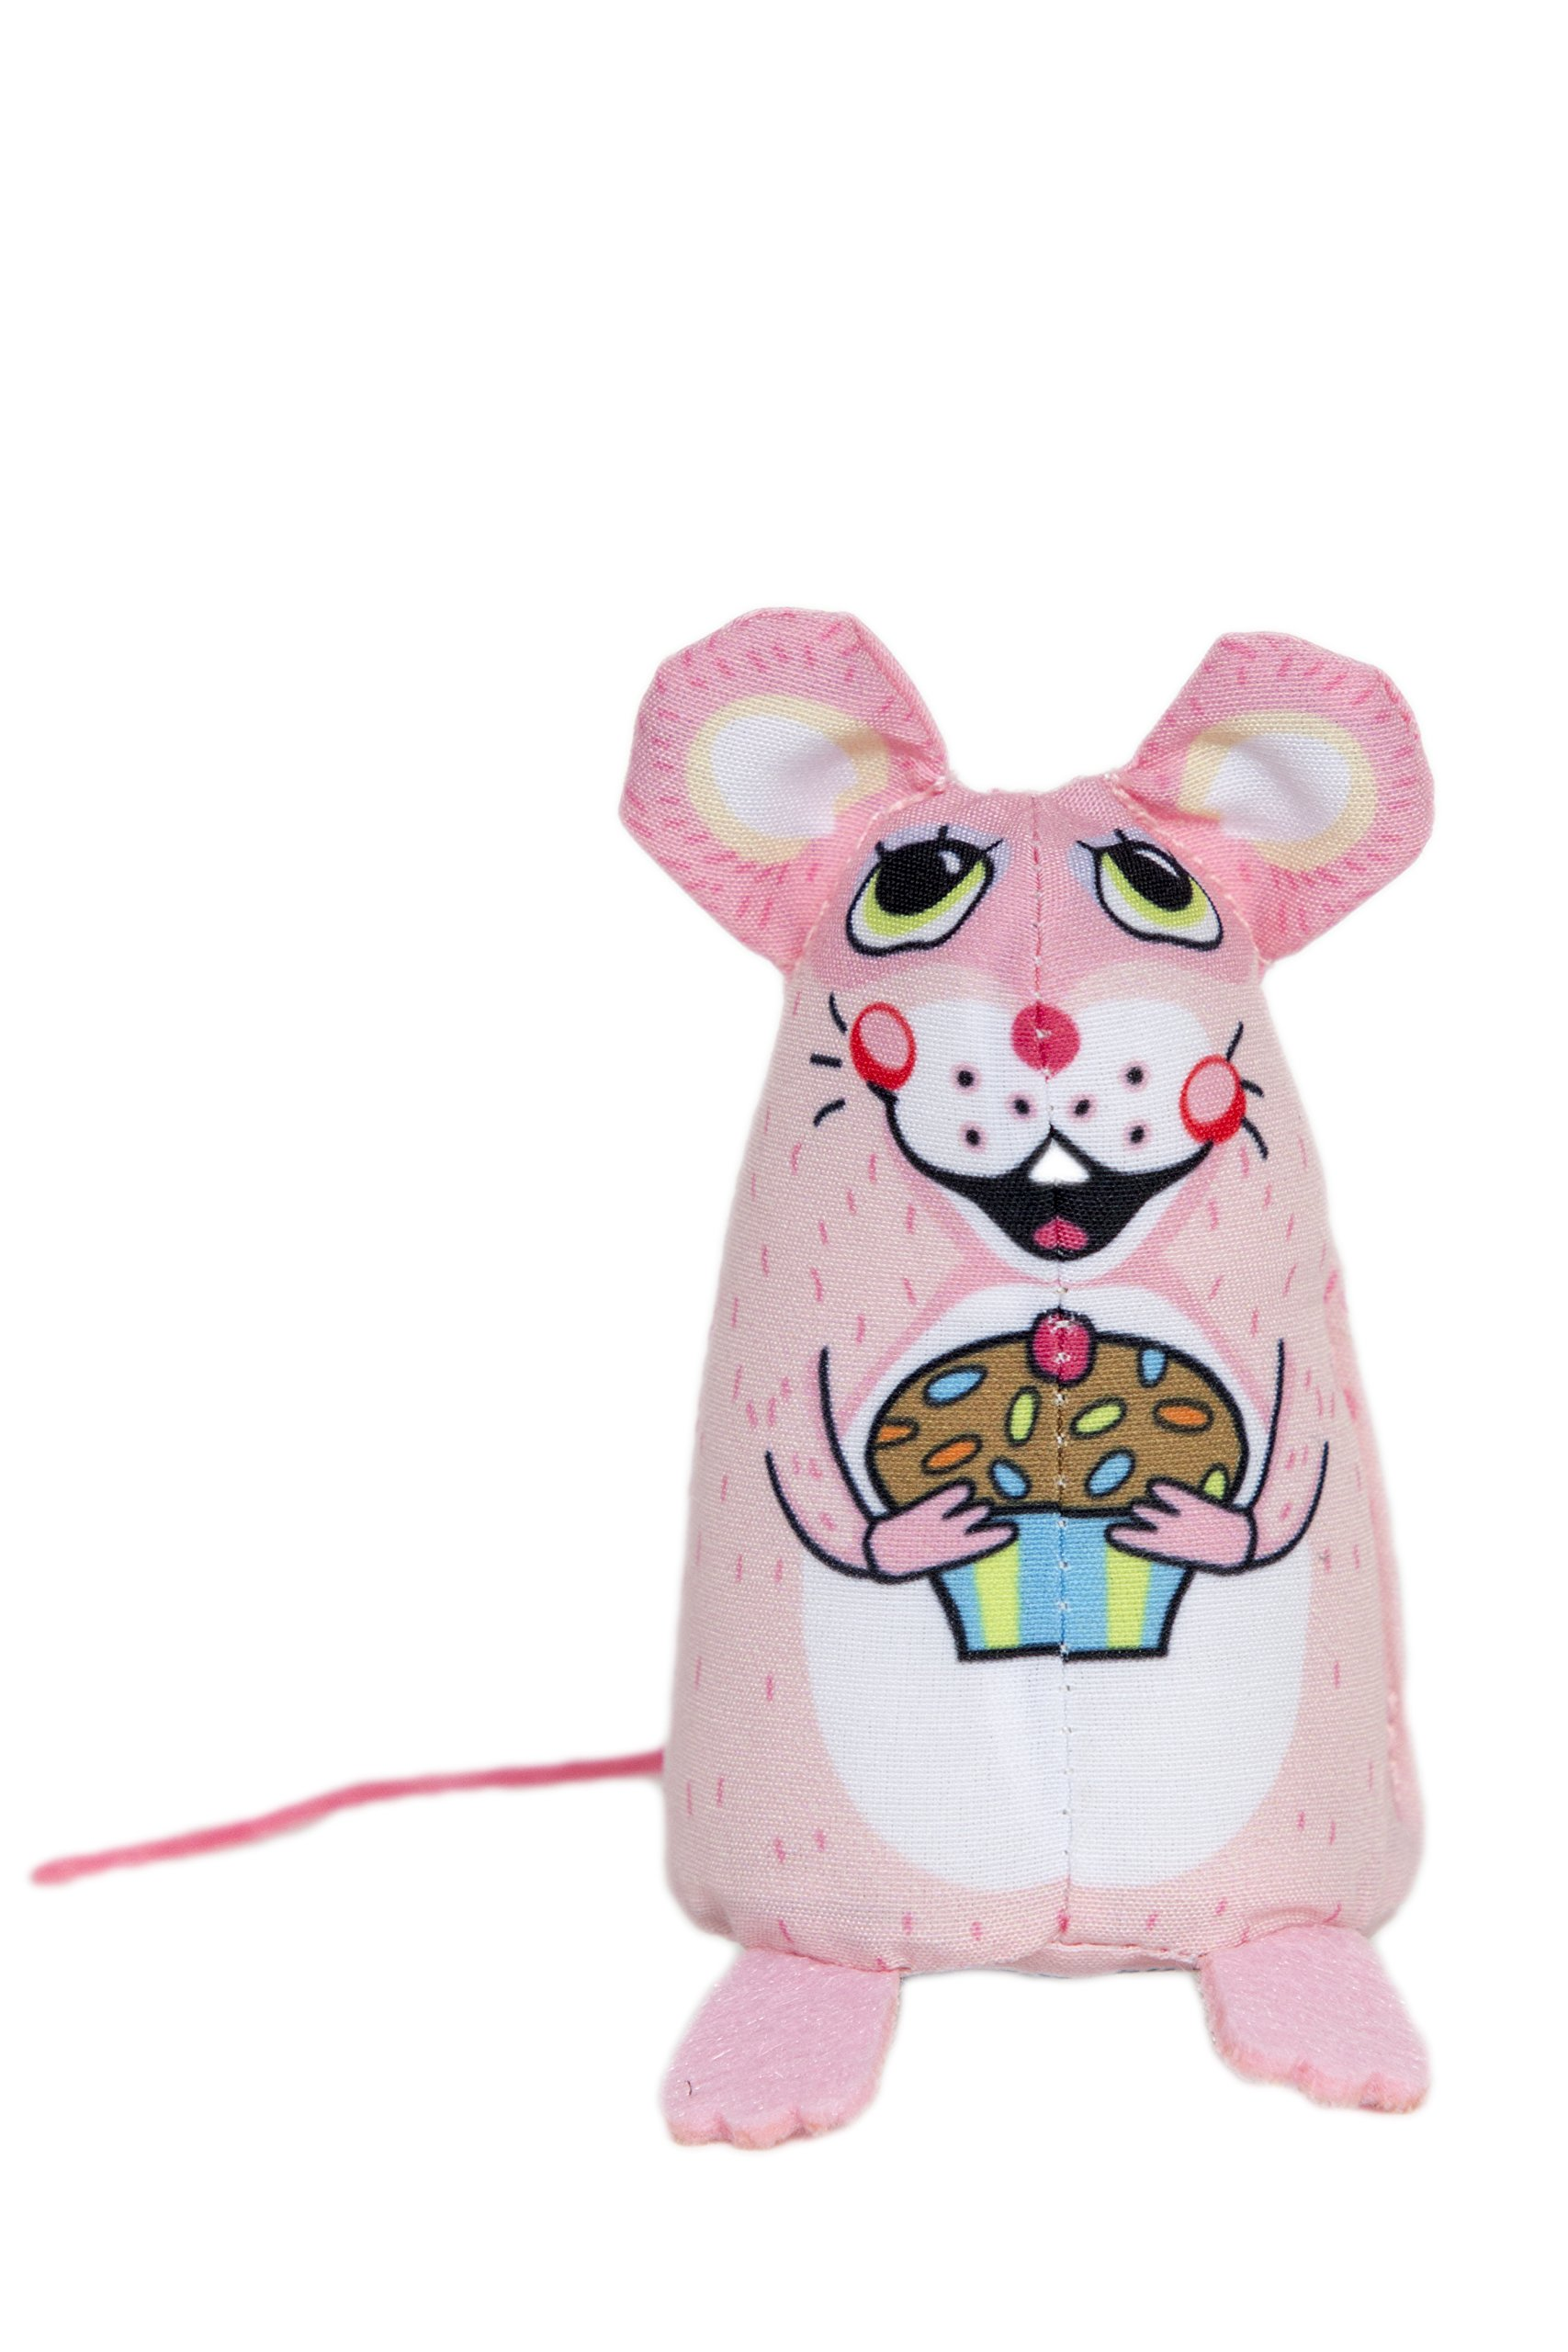 FUZZU Sweet Baby Mice Cute & Enticing Cat Toys - Whisker Twitching Treat, Hand Illustrated, Premium Quality, Durable Non-Toxic Material, Felt & Satin Cord Accents, U.S. Grown Certified Organic Catnip